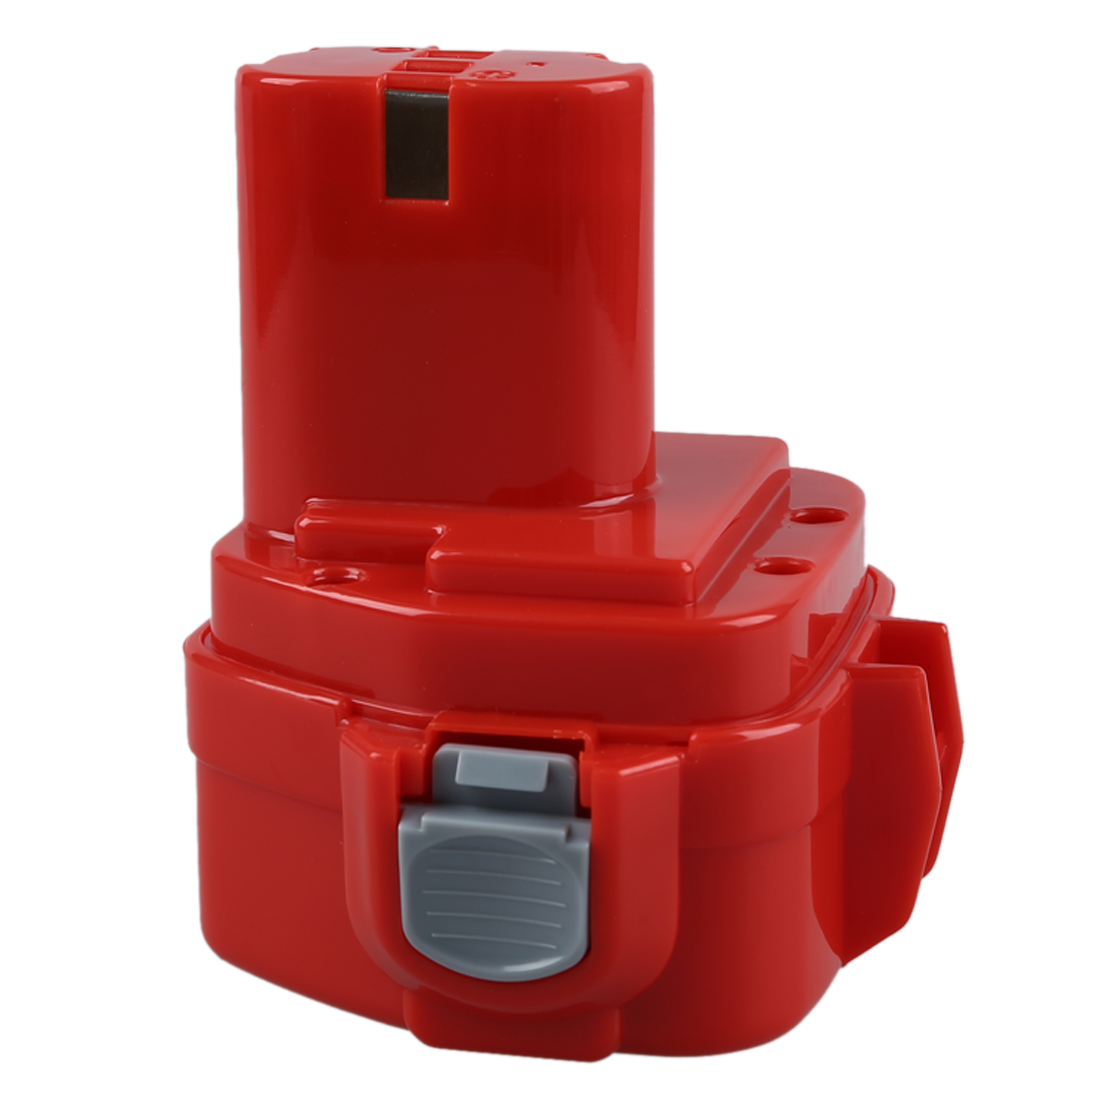 ФОТО Wholesale5pcs*NEW 2.0AH 12V Power Tool Battery for MAKITA 1220 1222 193981-6 6227D 6313D 6317D 6217DWDE 6217DWDLE 6223D Red